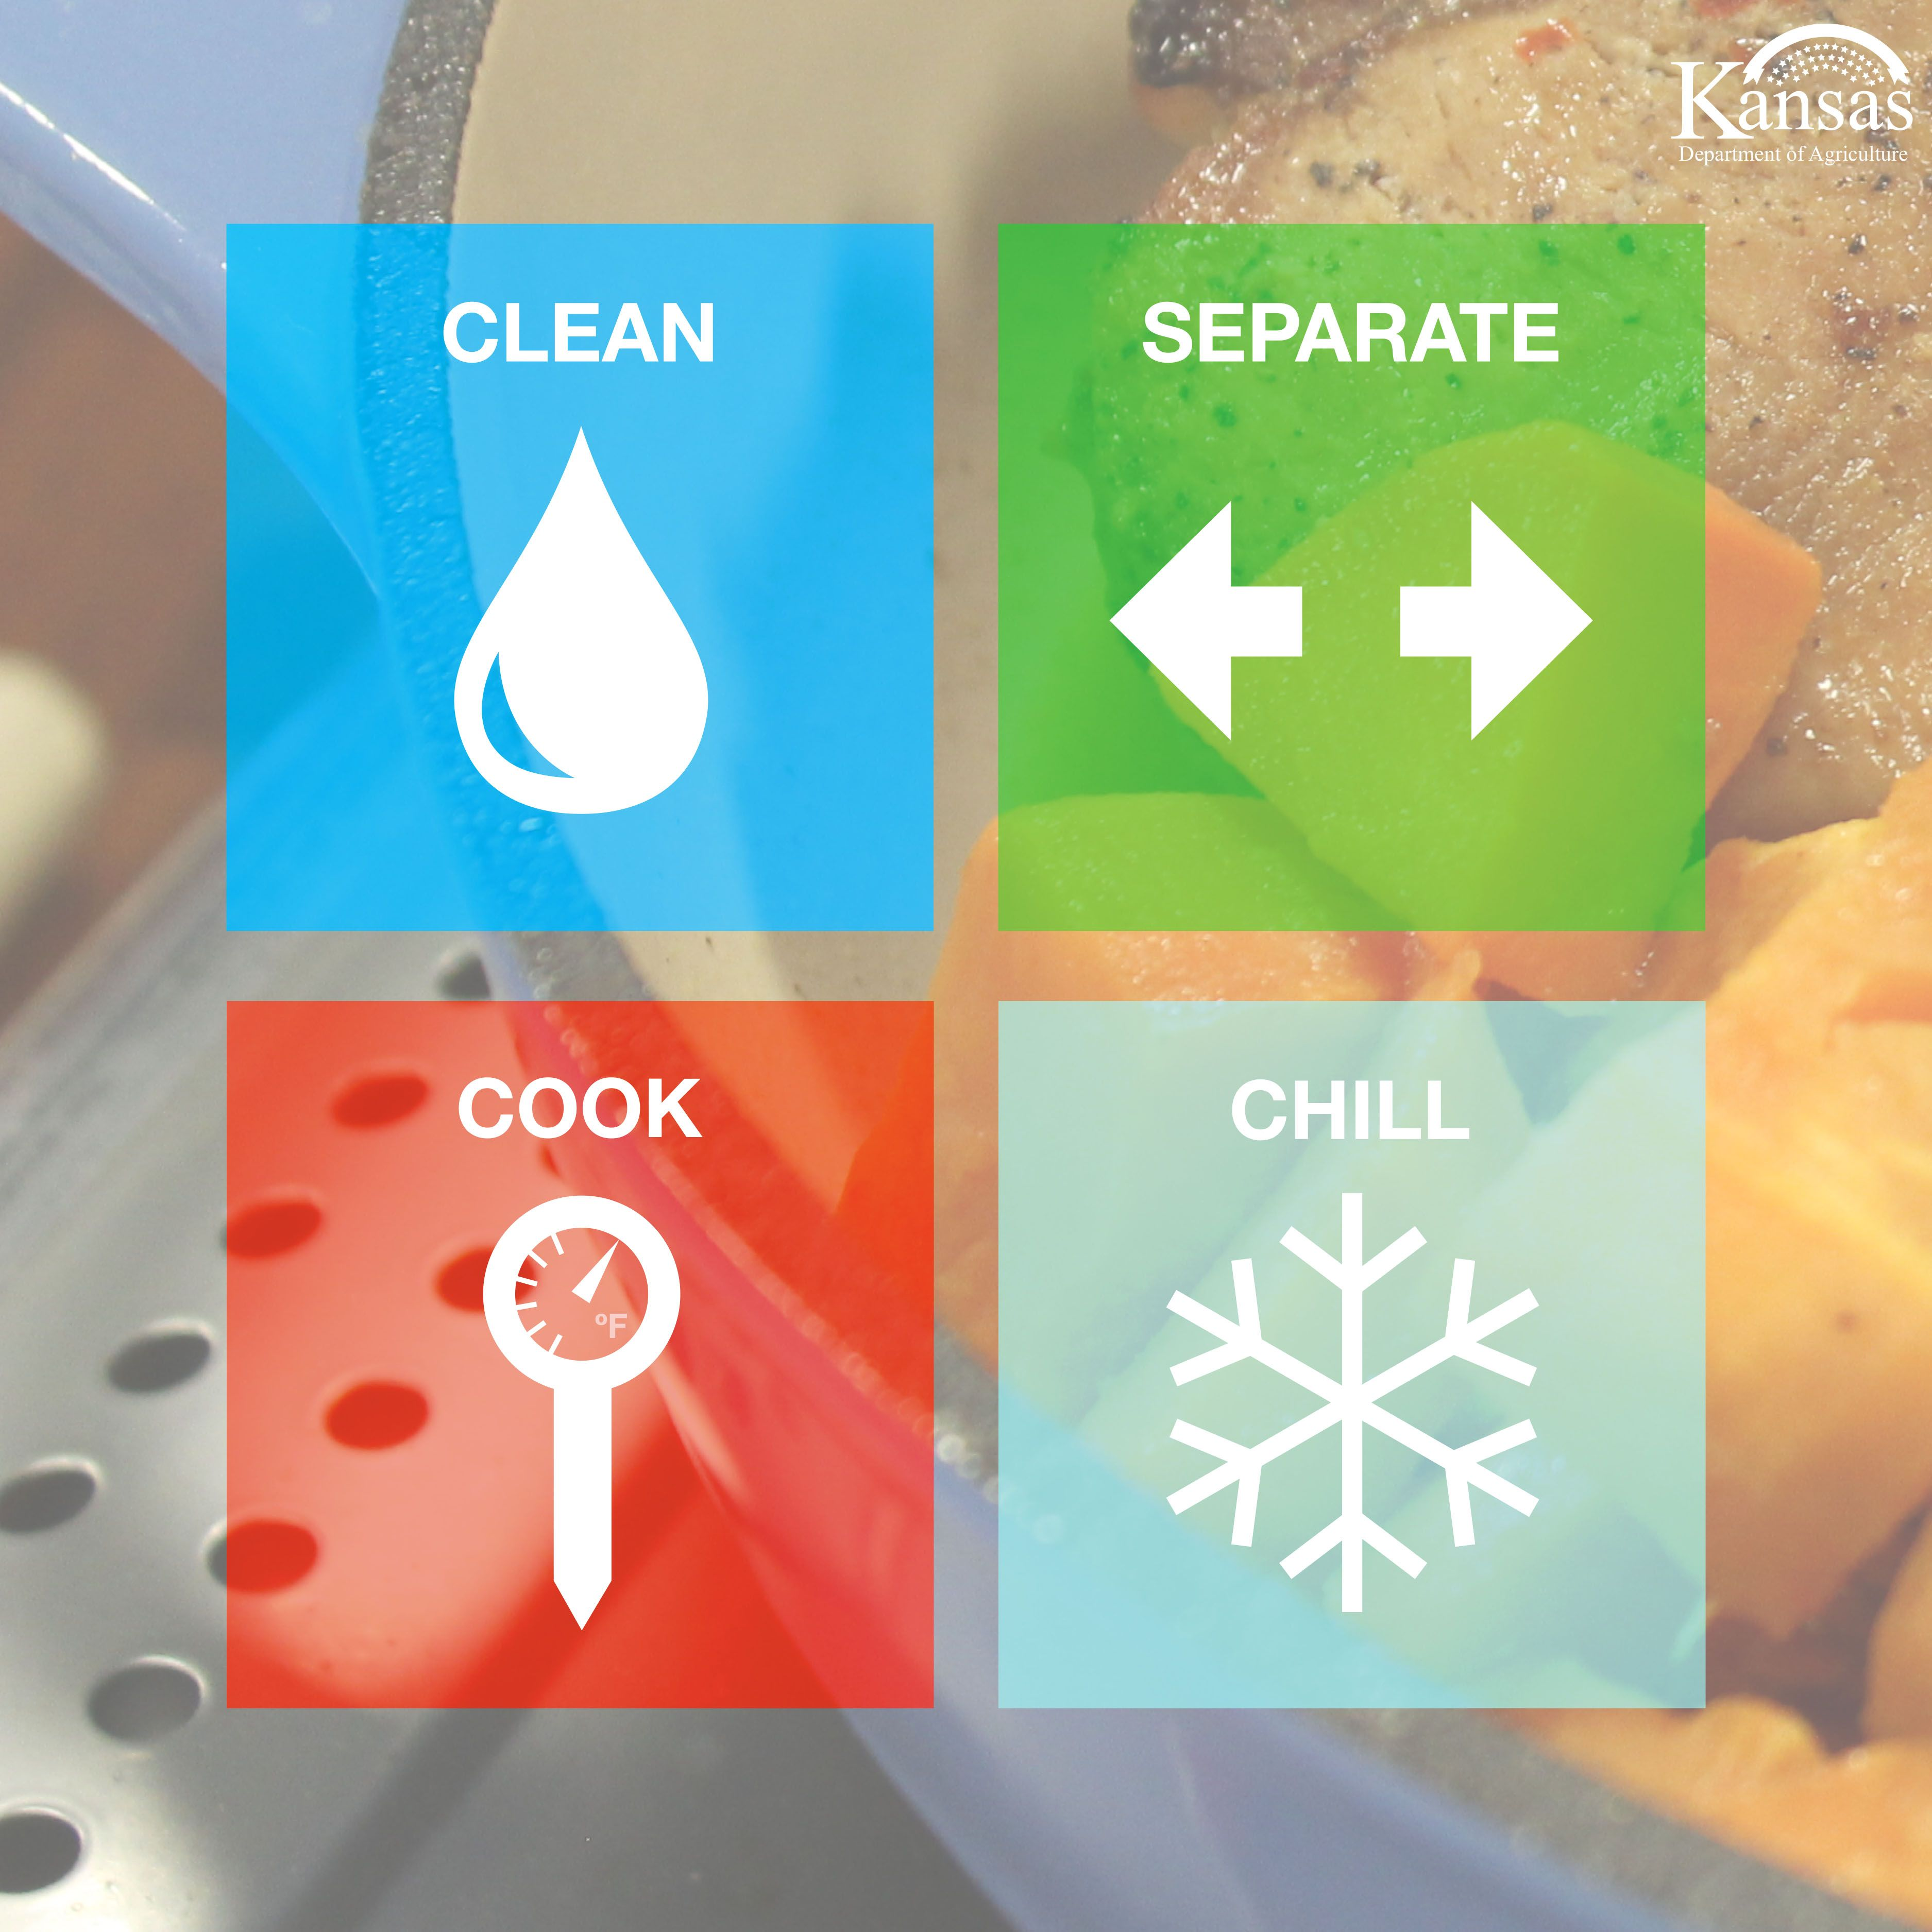 Food safety is a shared responsibility. It's important to